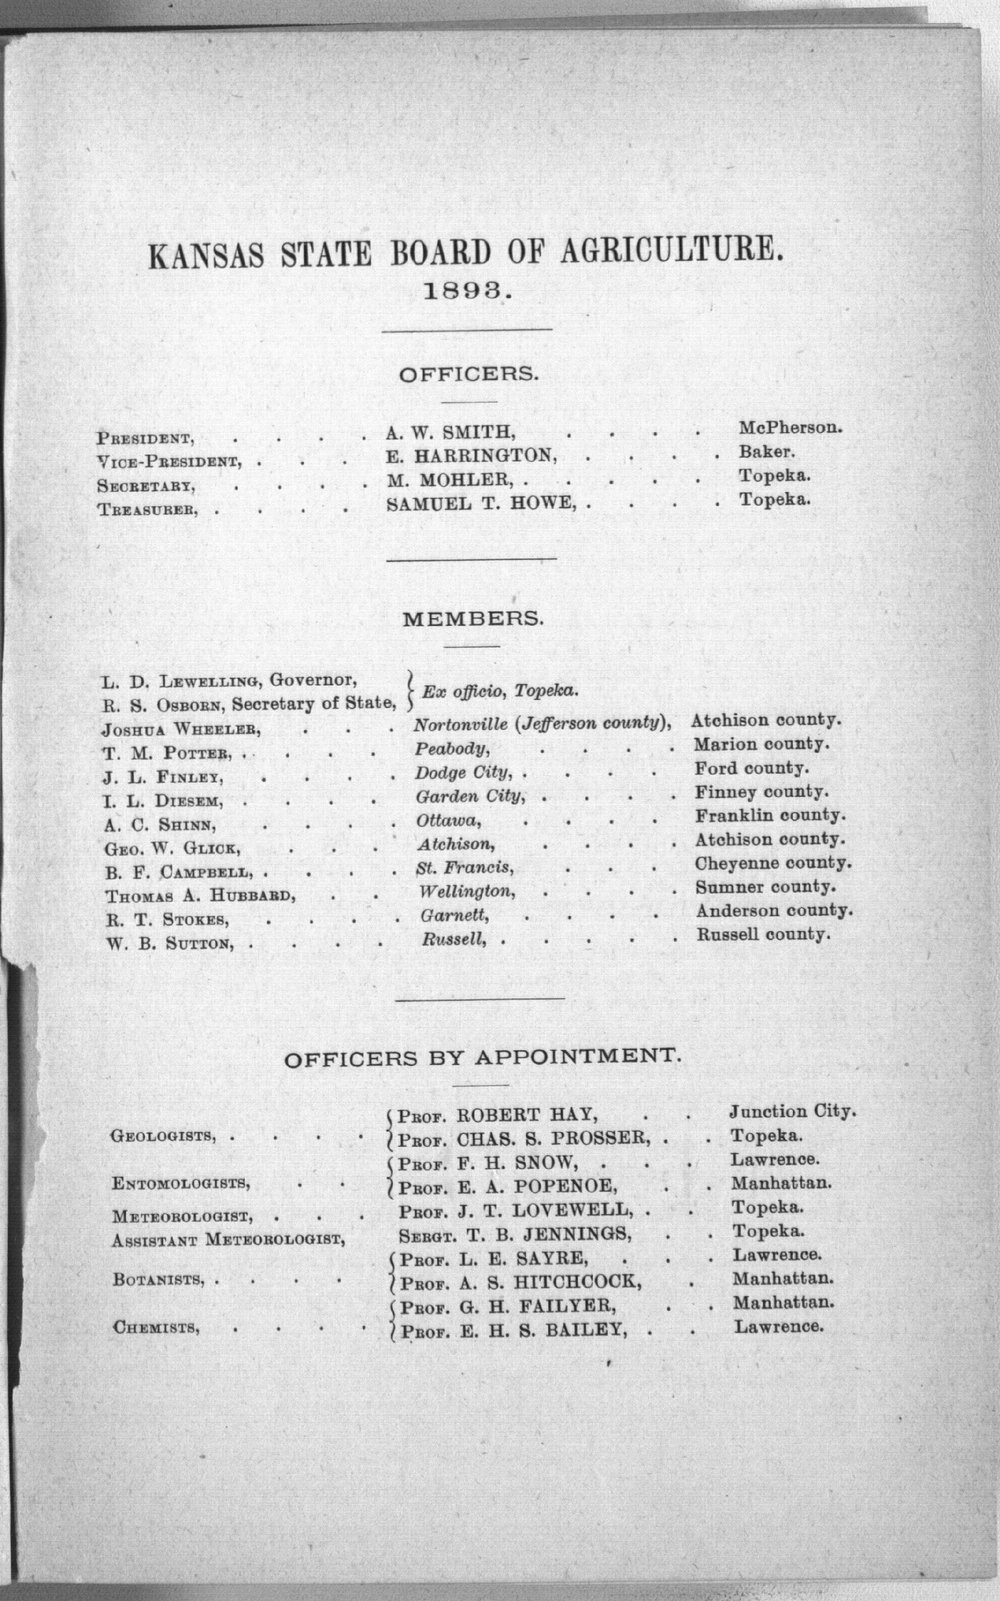 Eighth biennial report of the Kansas State Board of Agriculture, 1891-1892 - Officers